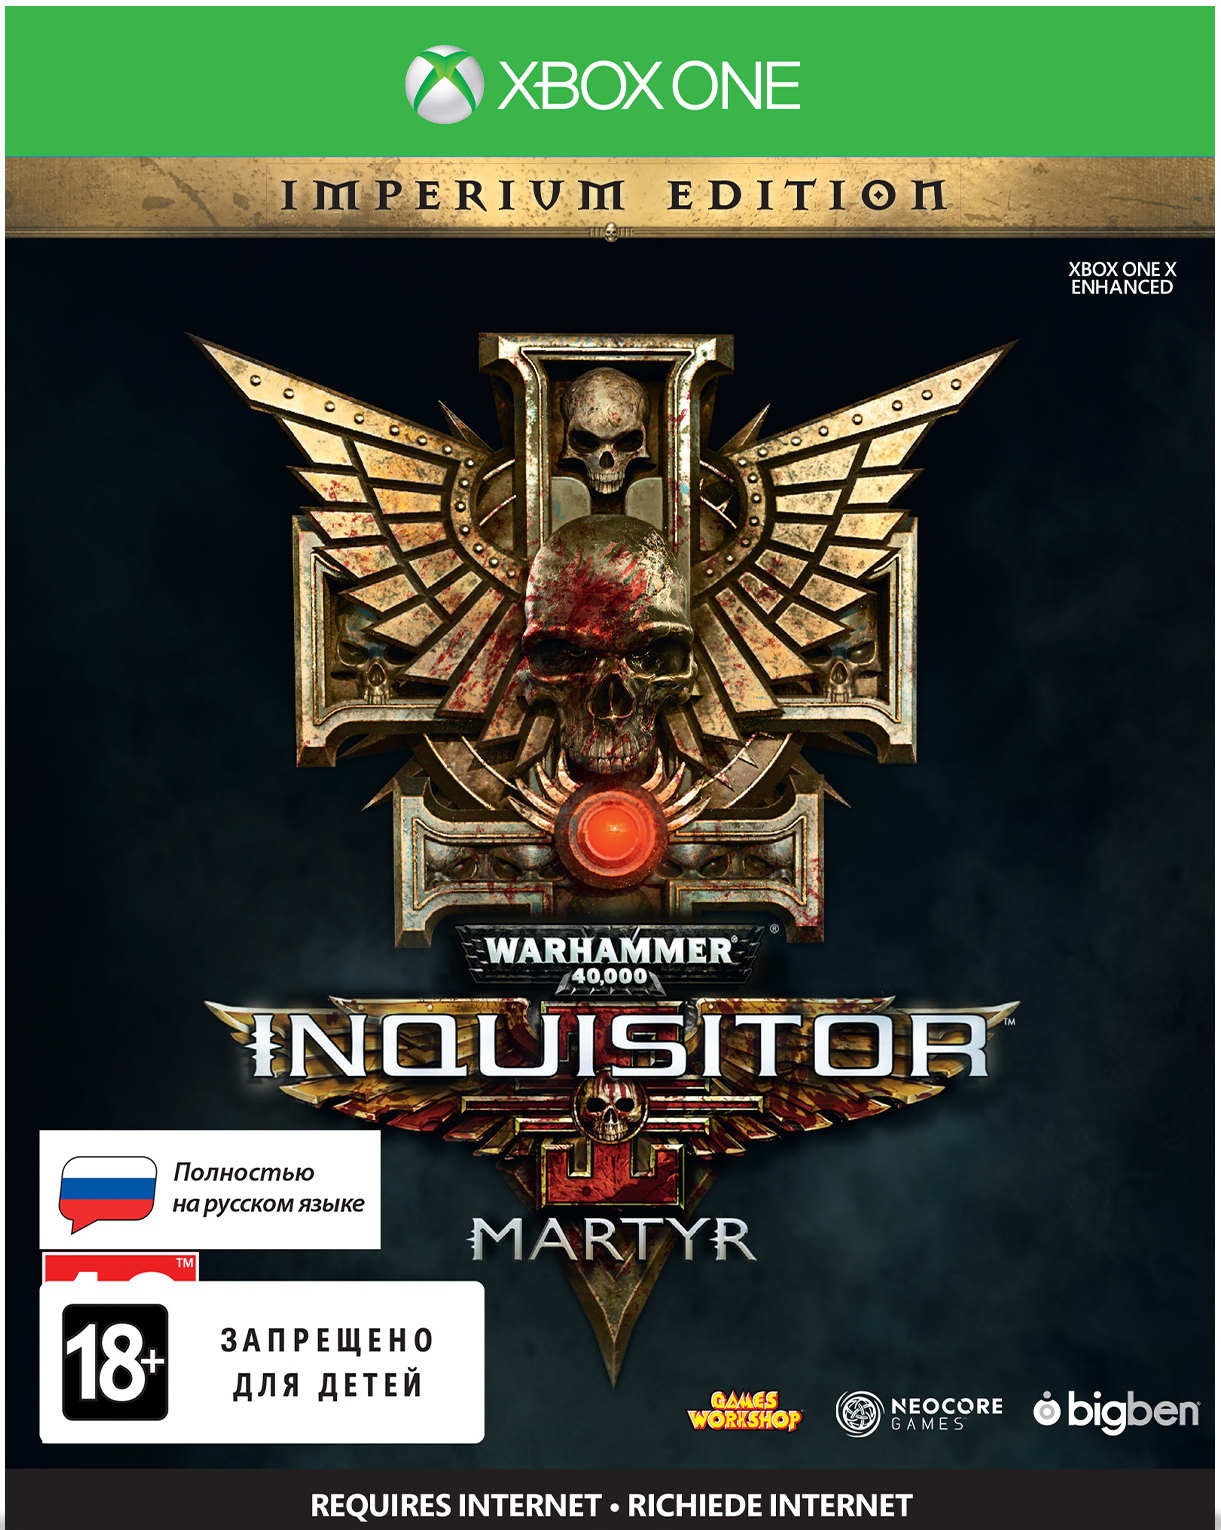 Warhammer 40,000: Inquisitor – Martyr. Imperium Edition [Xbox One]